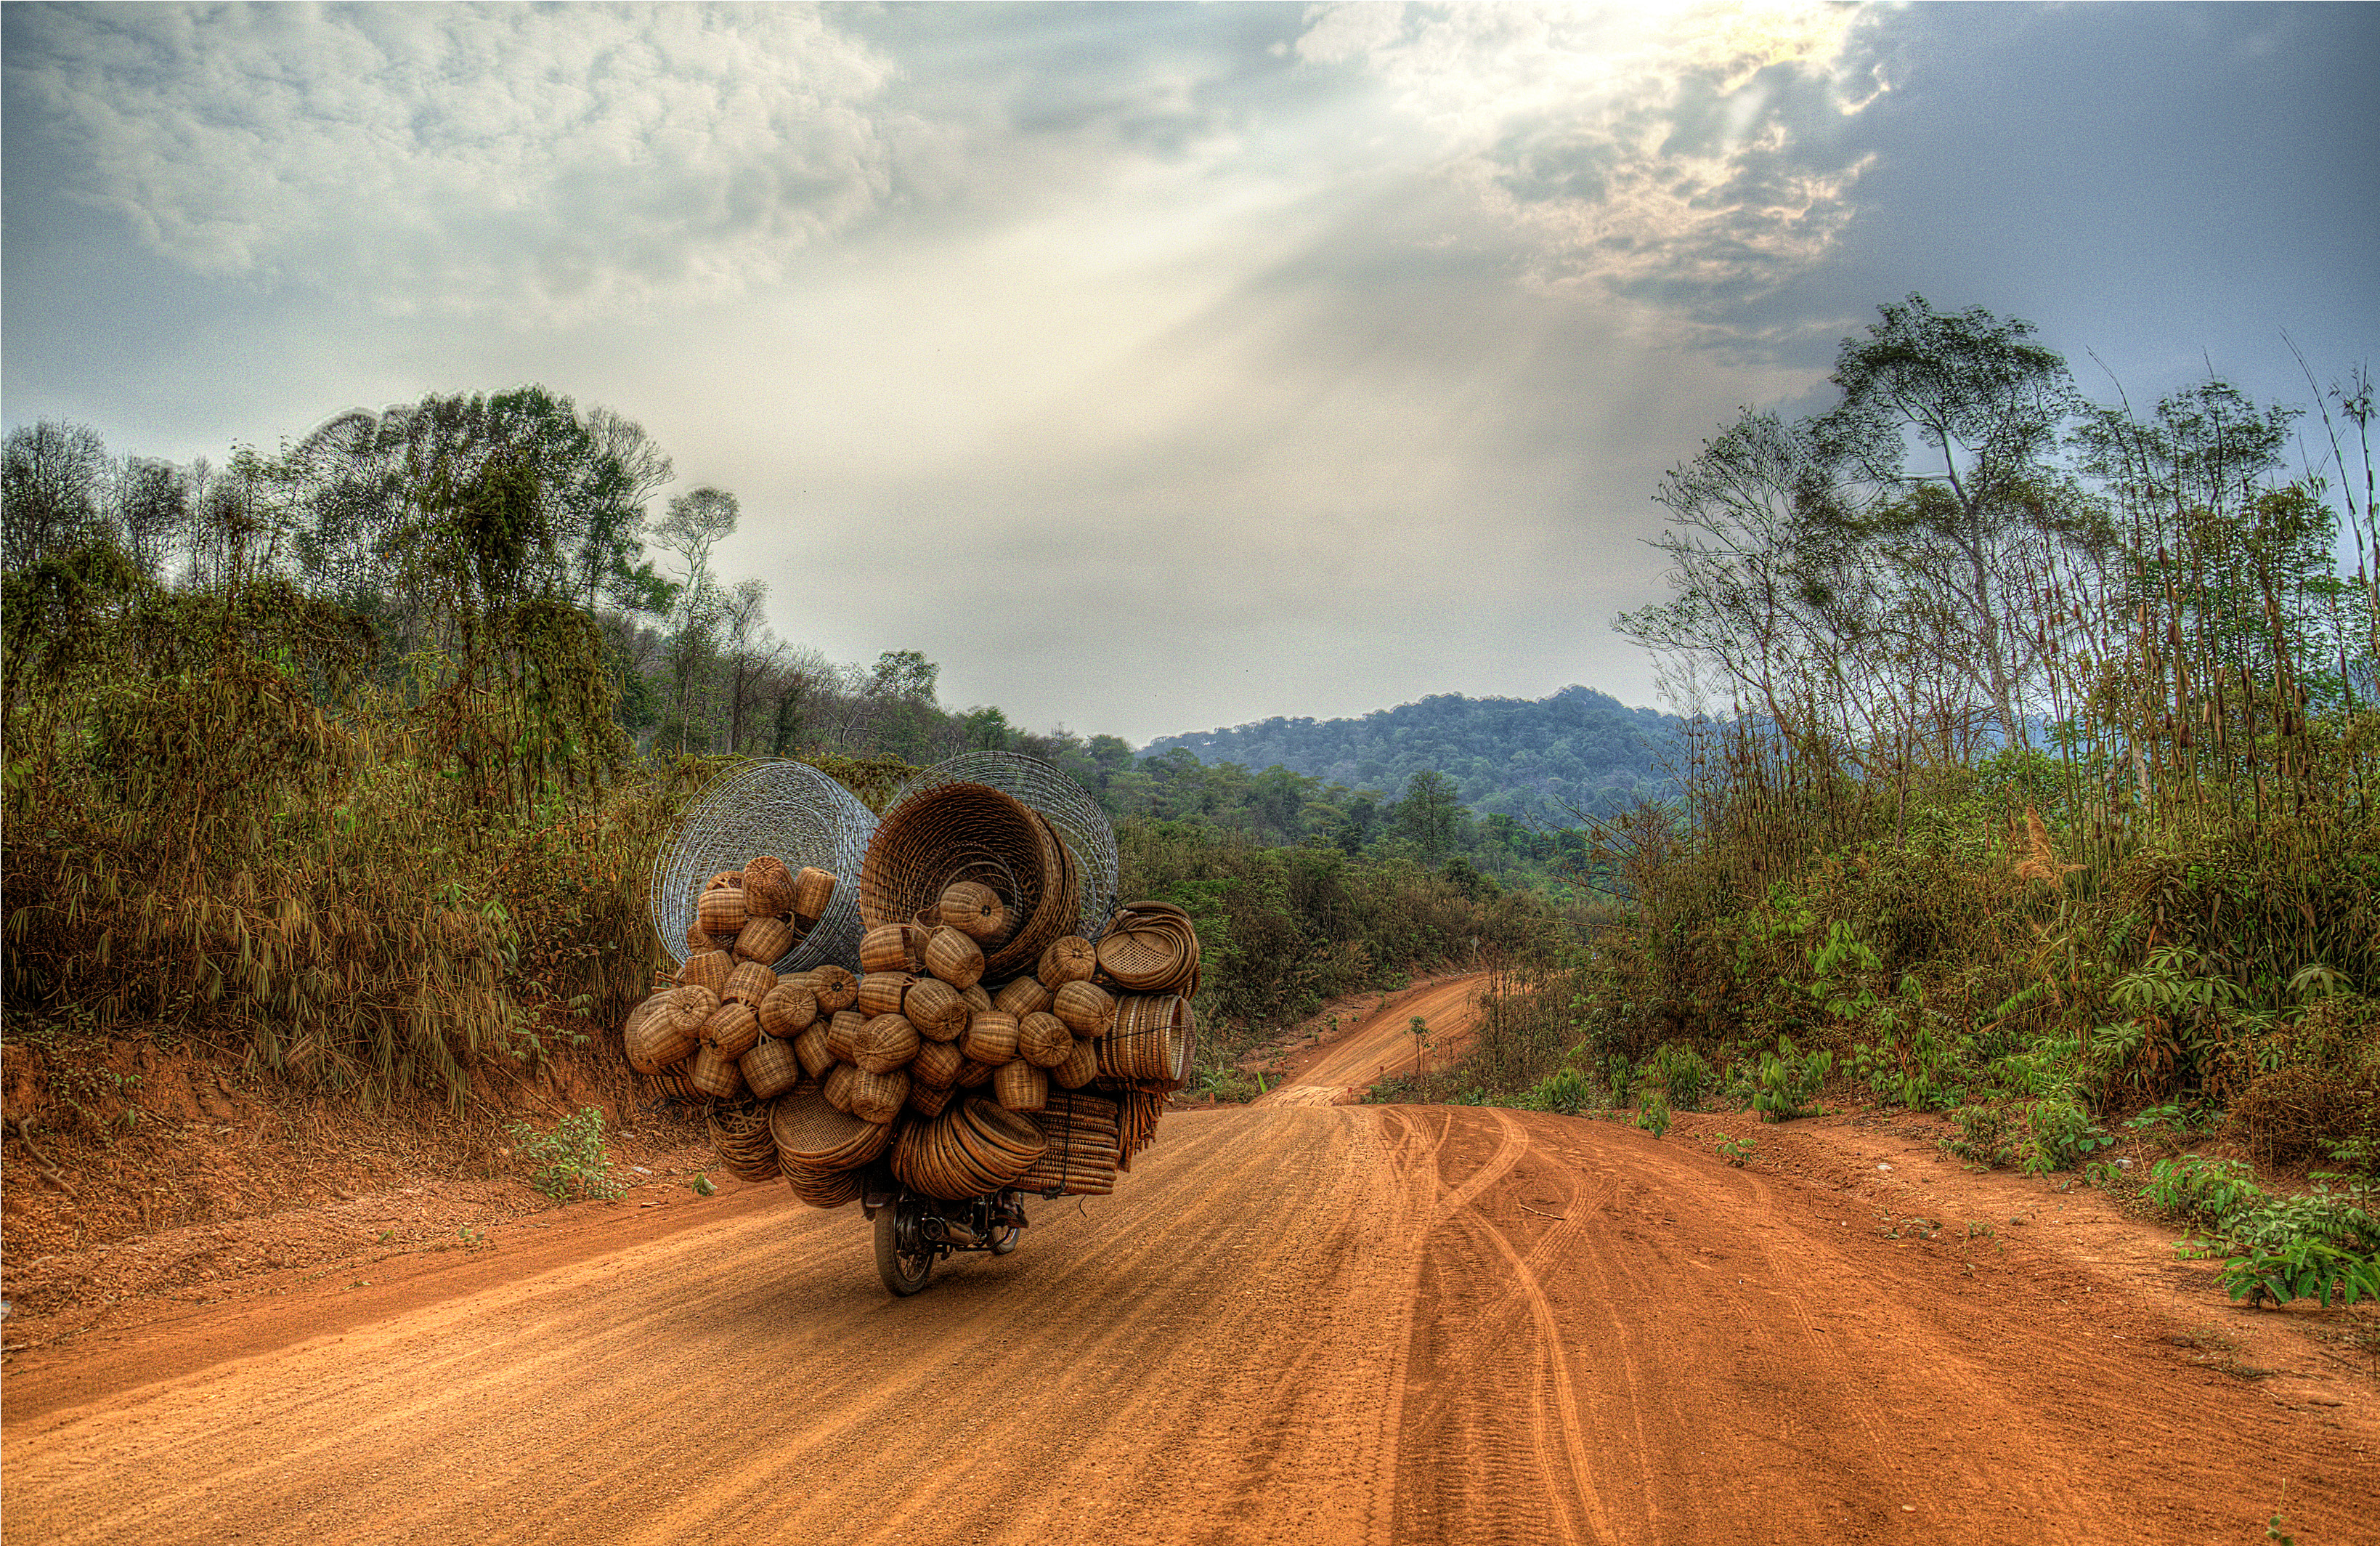 a cambodian itinerant seller of baskets, on a motorcycle